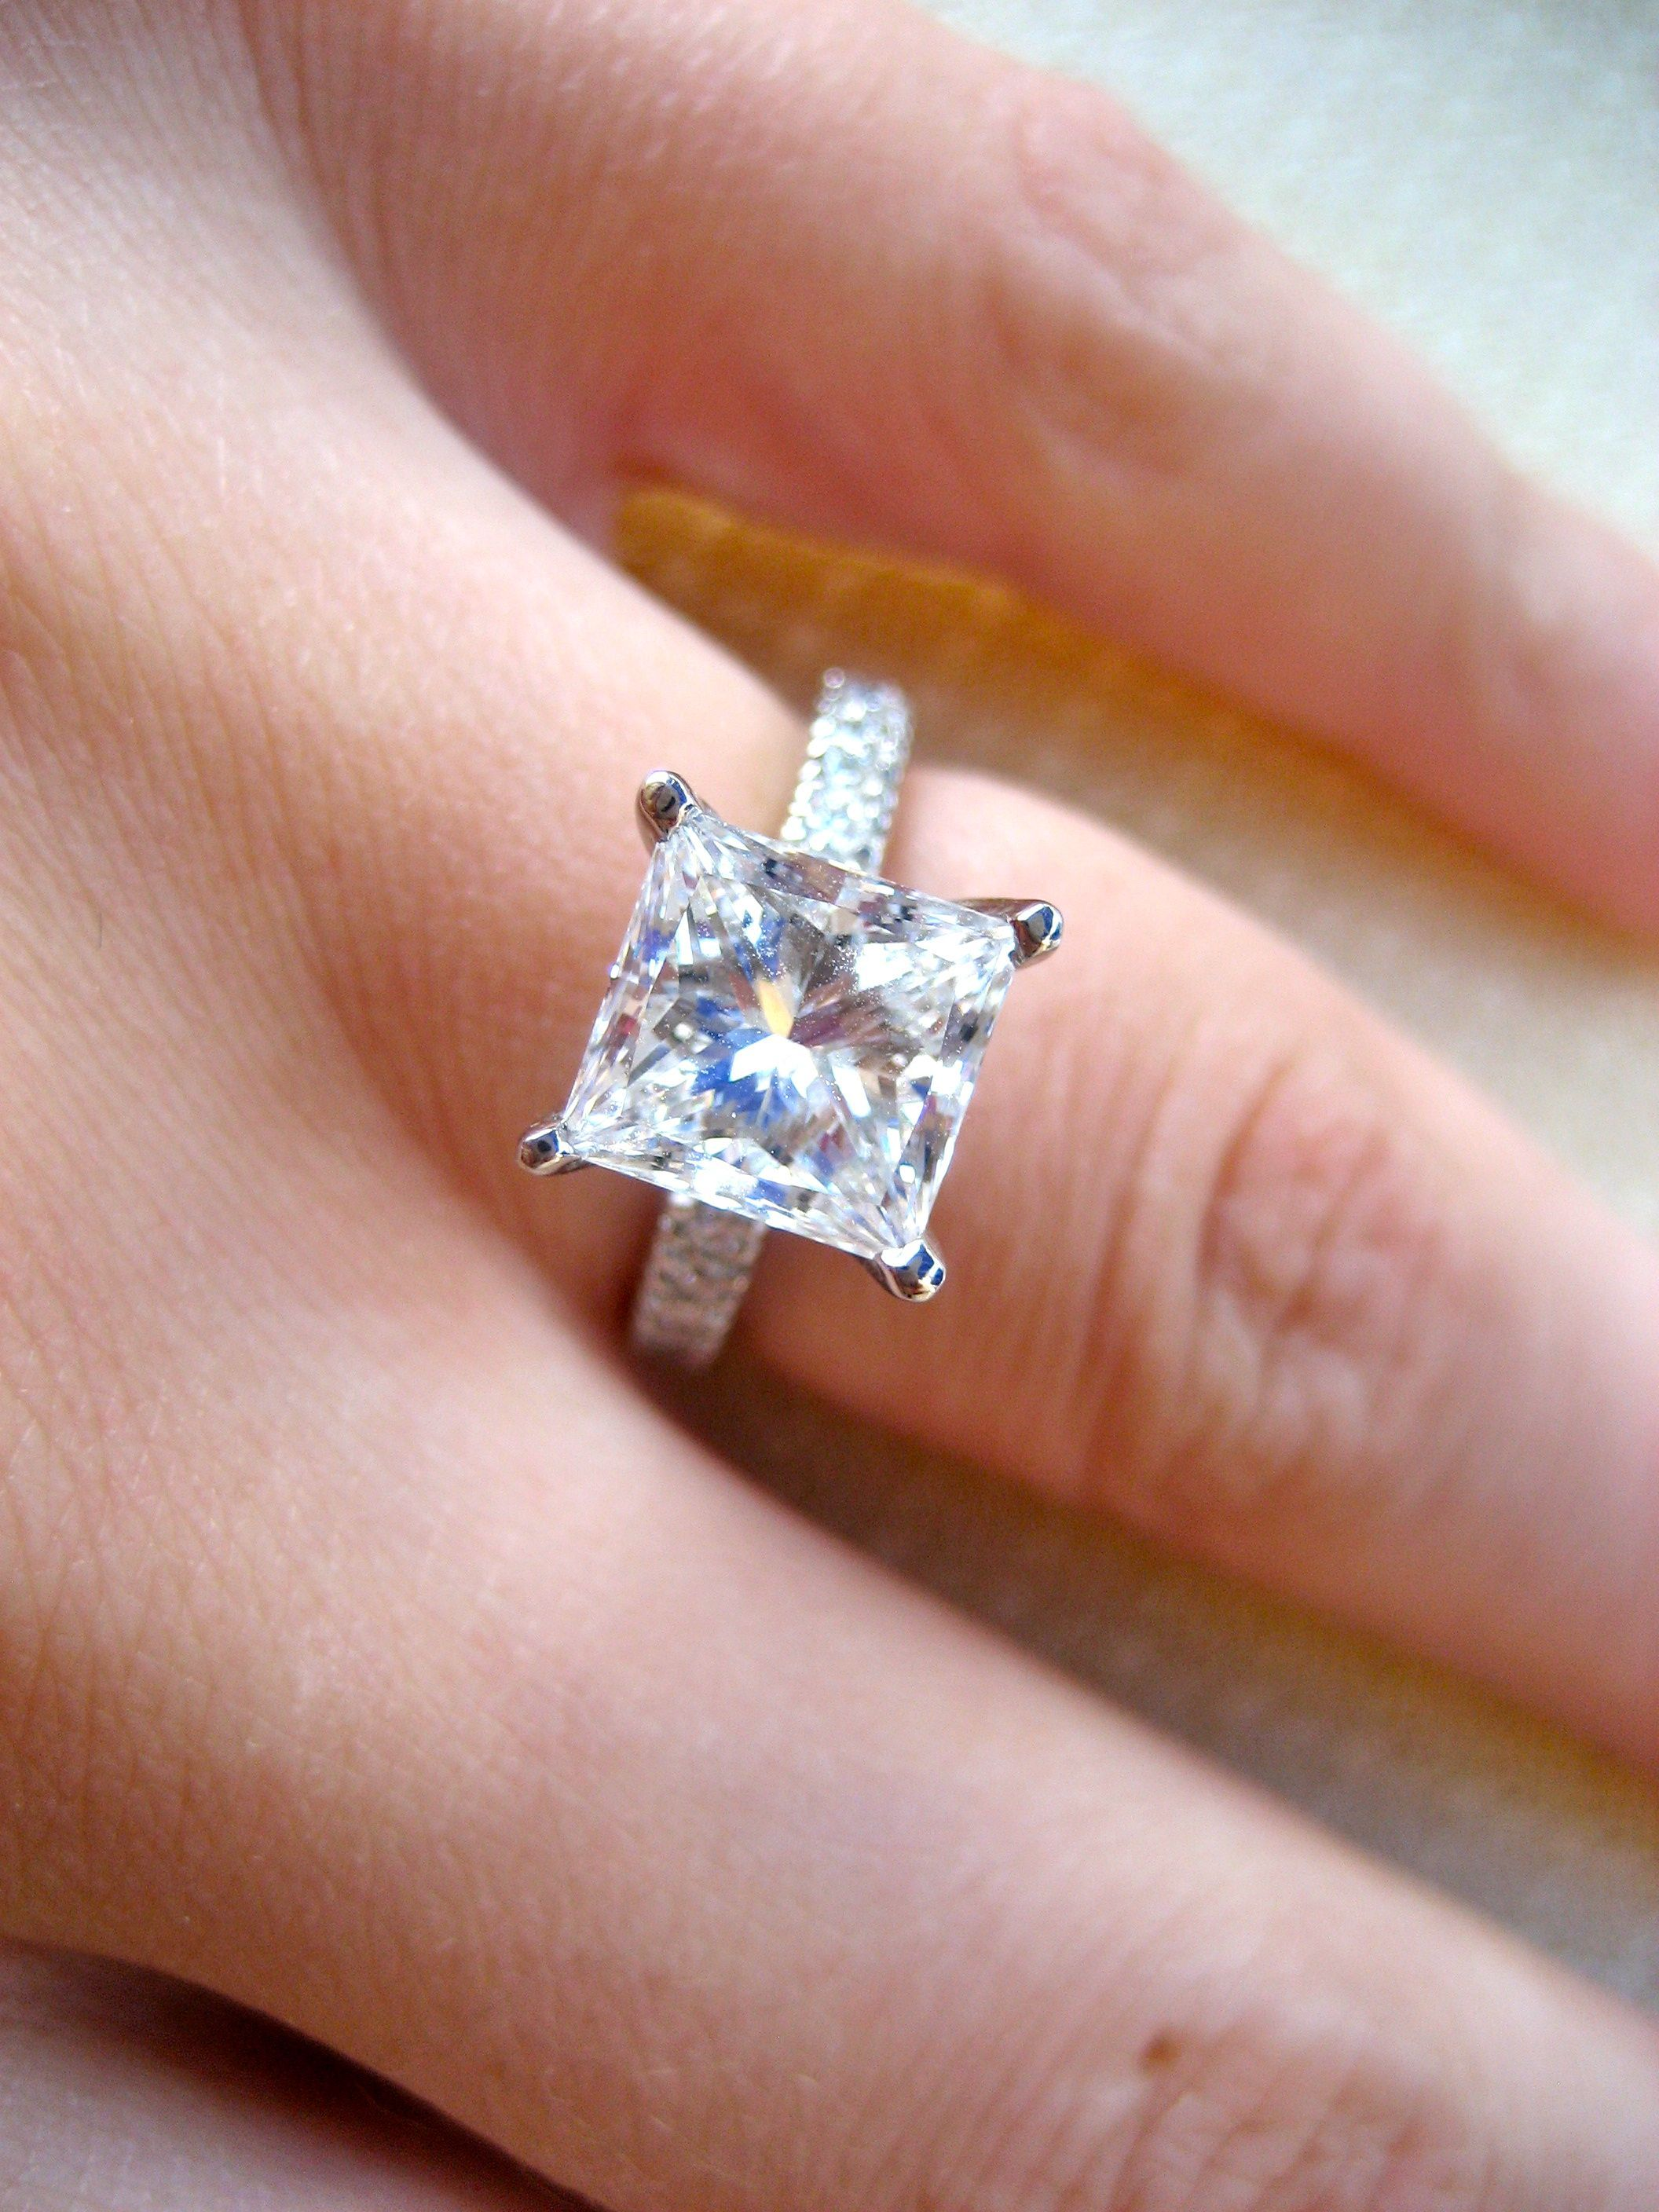 Look at these solitaire engagement rings 1688